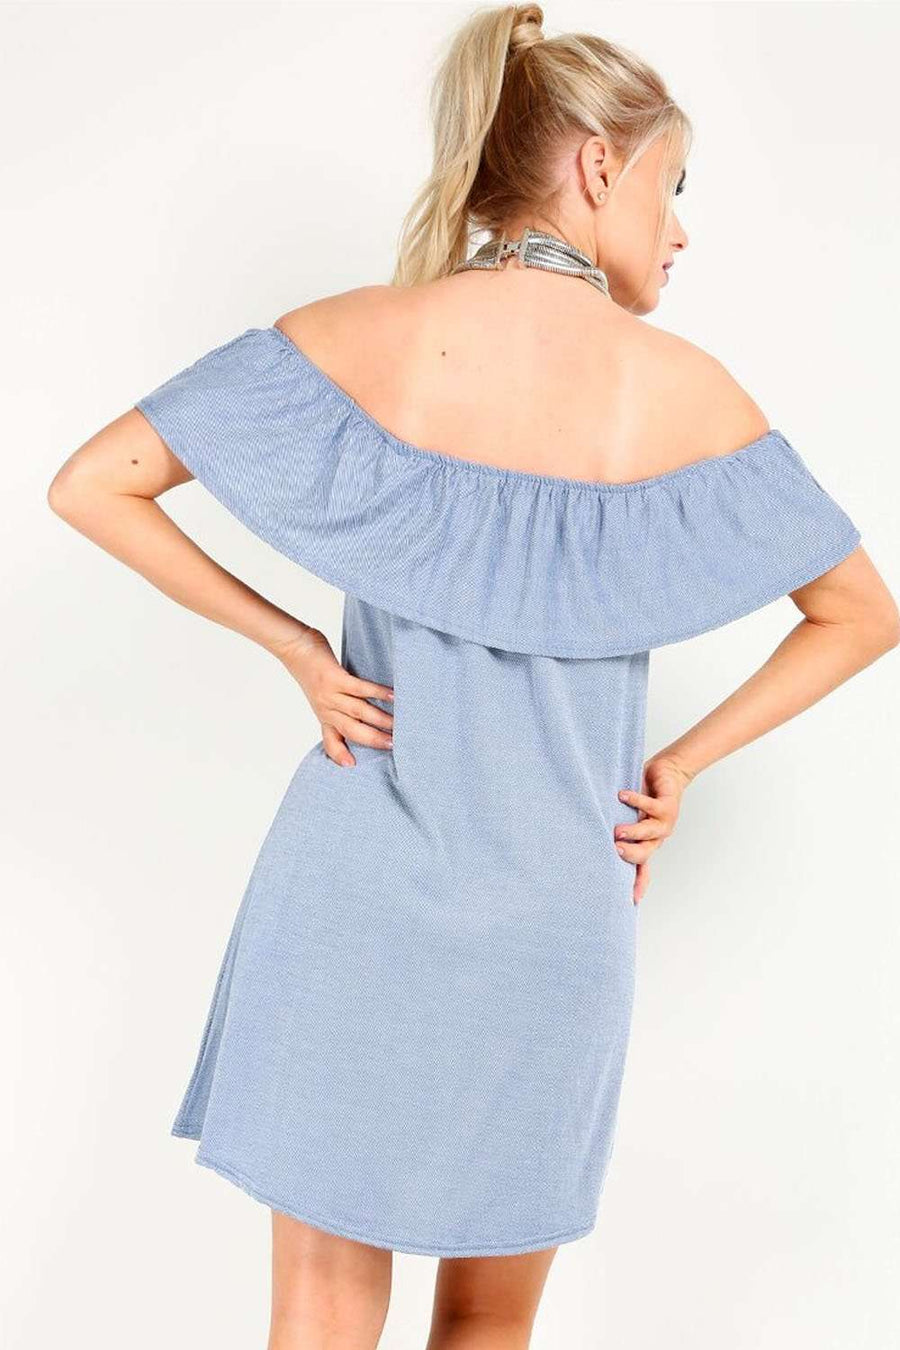 Marlia Off Shoulder Frill Denim Mini Dress - bejealous-com